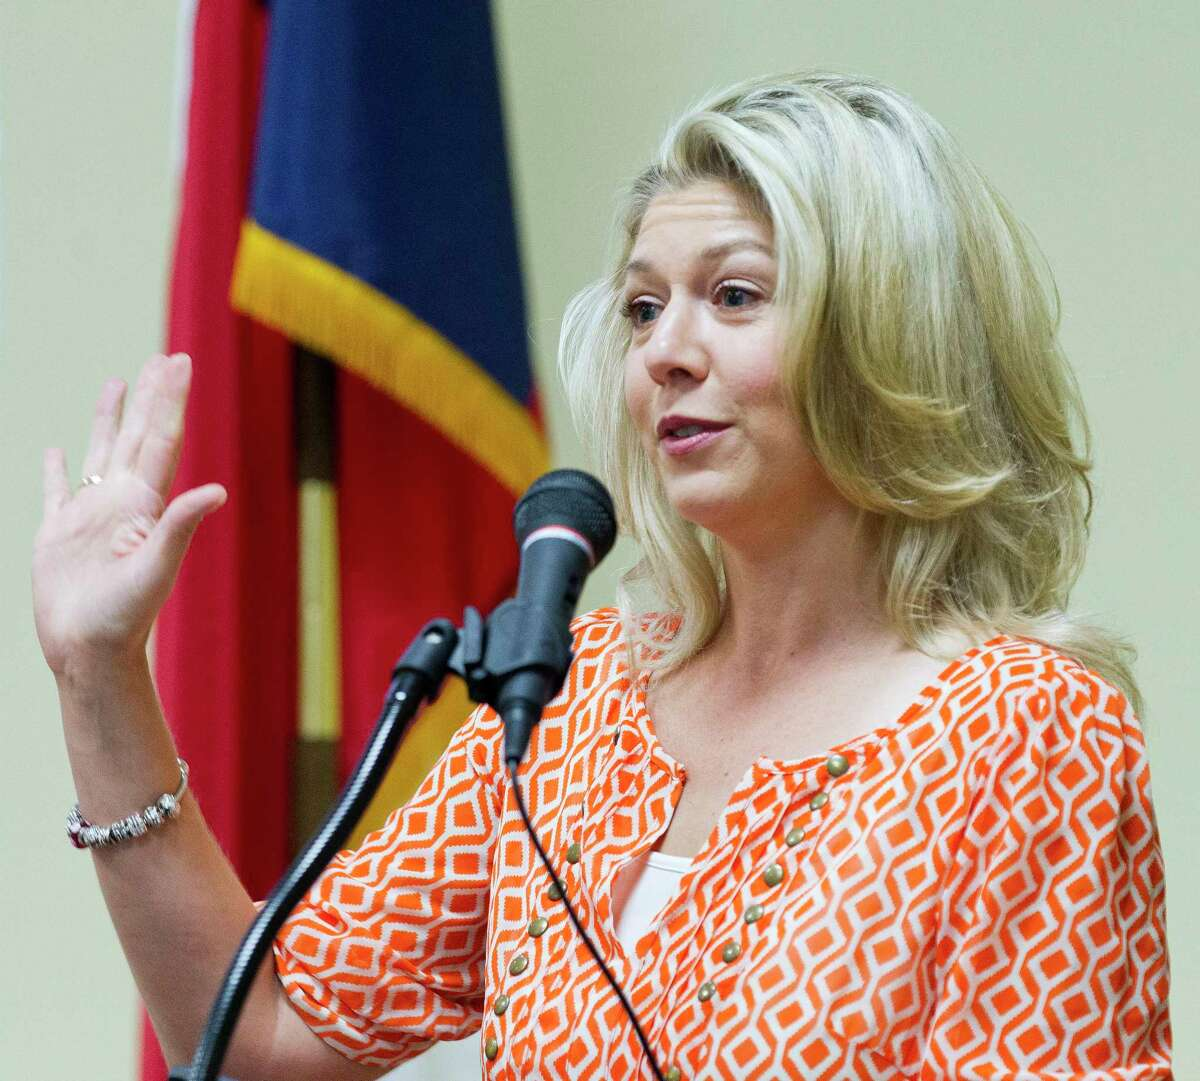 Laura Fillault, incumbent for Position 7 with The Woodlands Township Board of Directors, speaks during a Texas Patriots PAC meeting, Tuesday, Sept. 19, 2017, in The Woodlands.